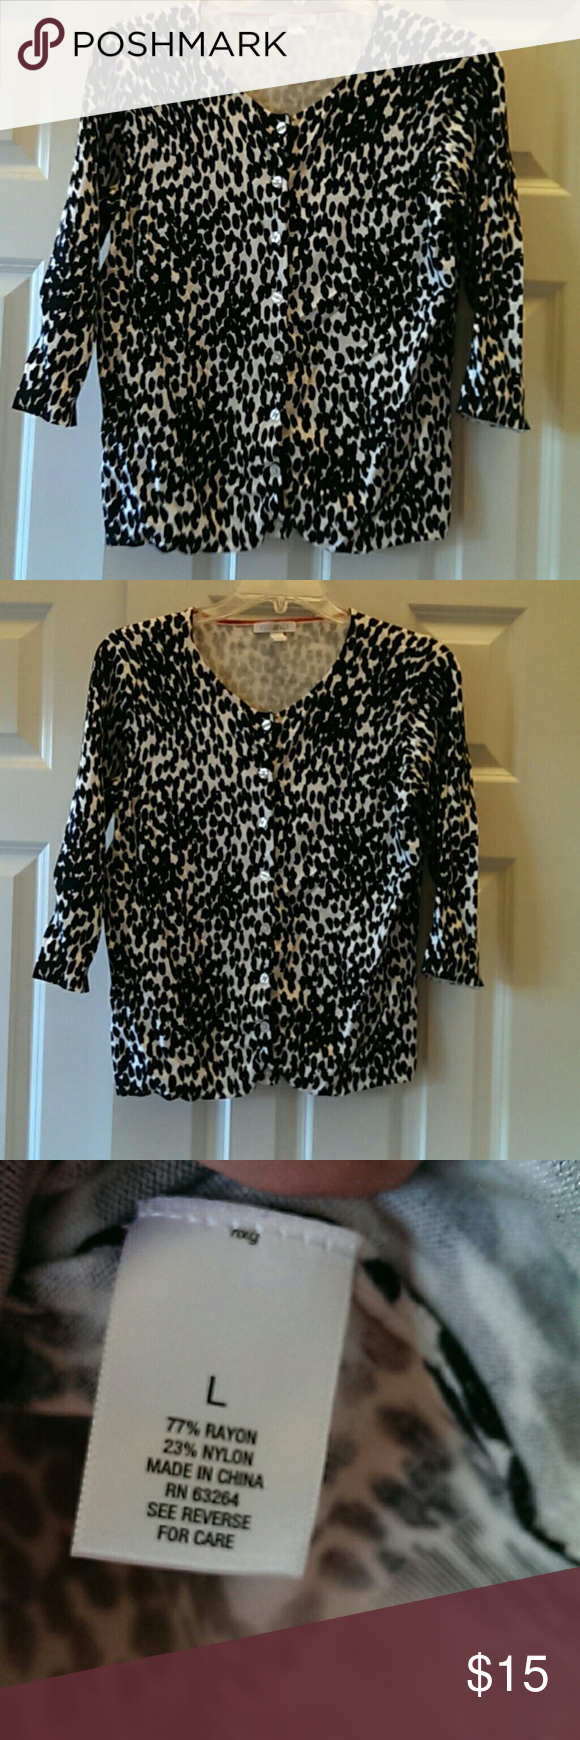 Leopard print cardigan | White leopard, Leopards and Conditioning